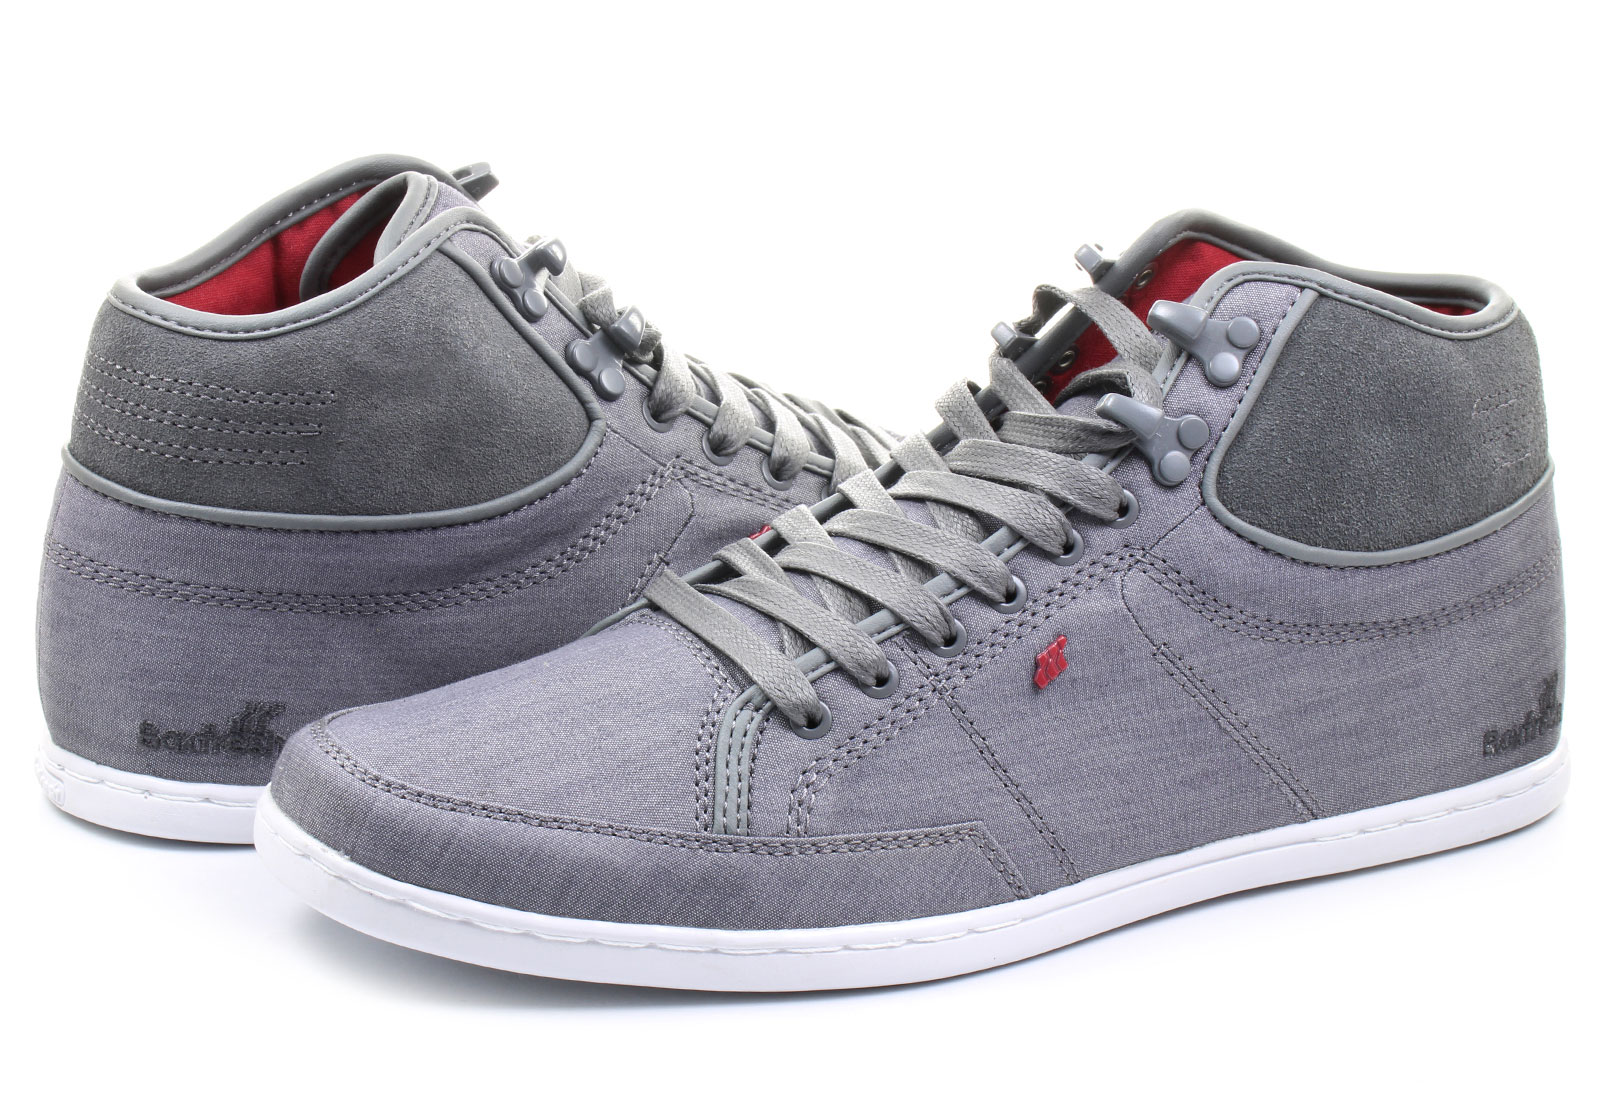 promo code 0ce09 b980c Boxfresh Shoes - Swapp - E14651-gry - Online shop for sneakers, shoes and  boots